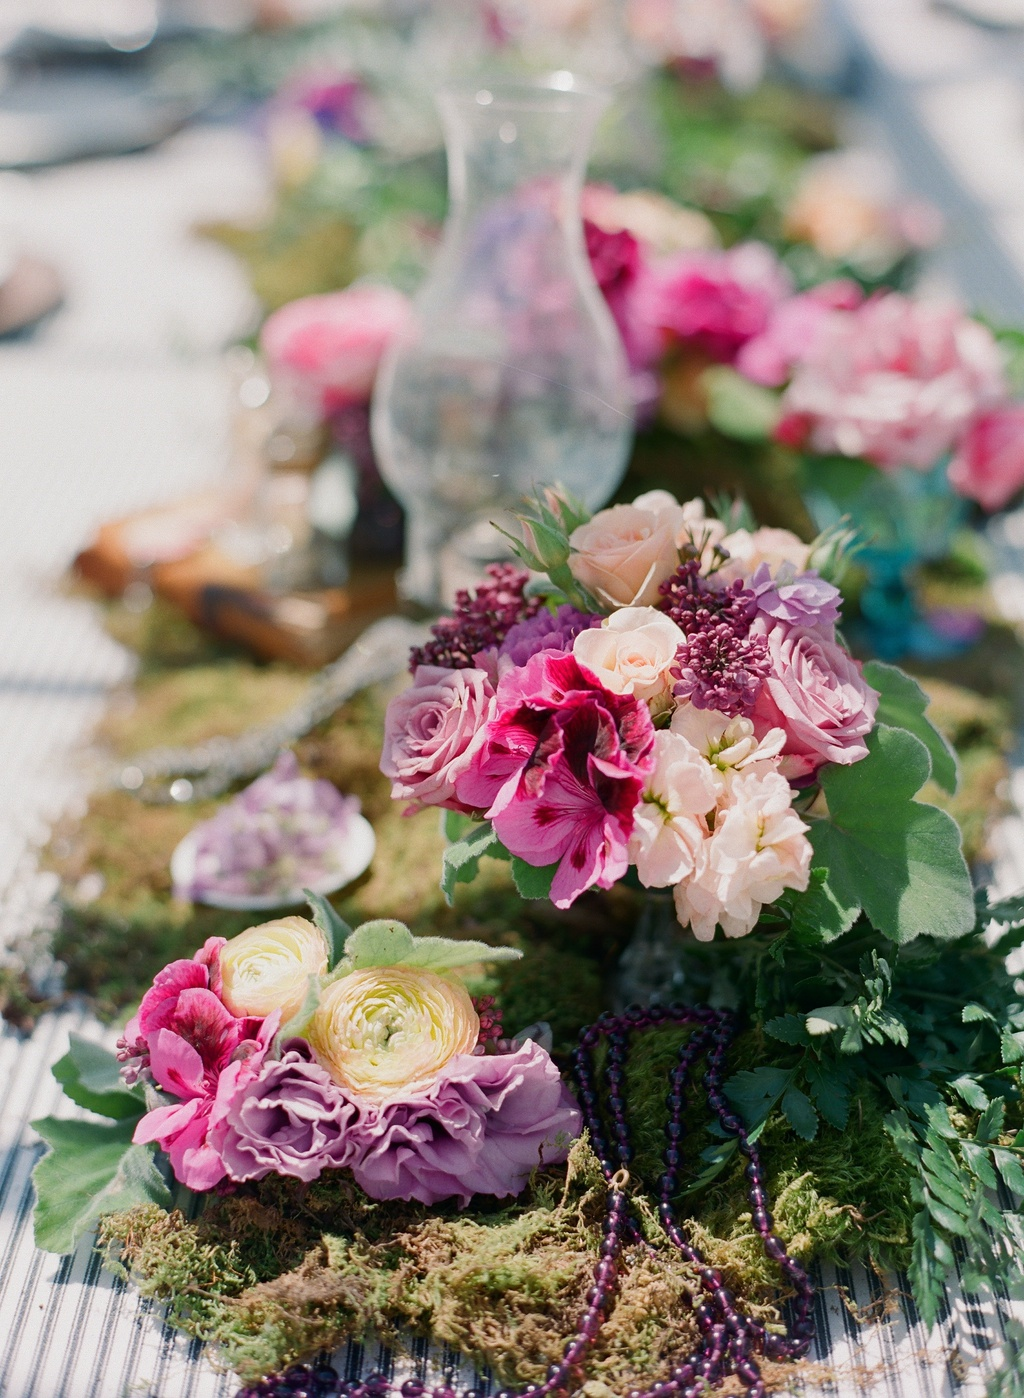 Styled-wedding-beaux-arts-tea-time-monique-lhuillier-santa-barbara-chic-flowers-pink-purple-moss-278.full